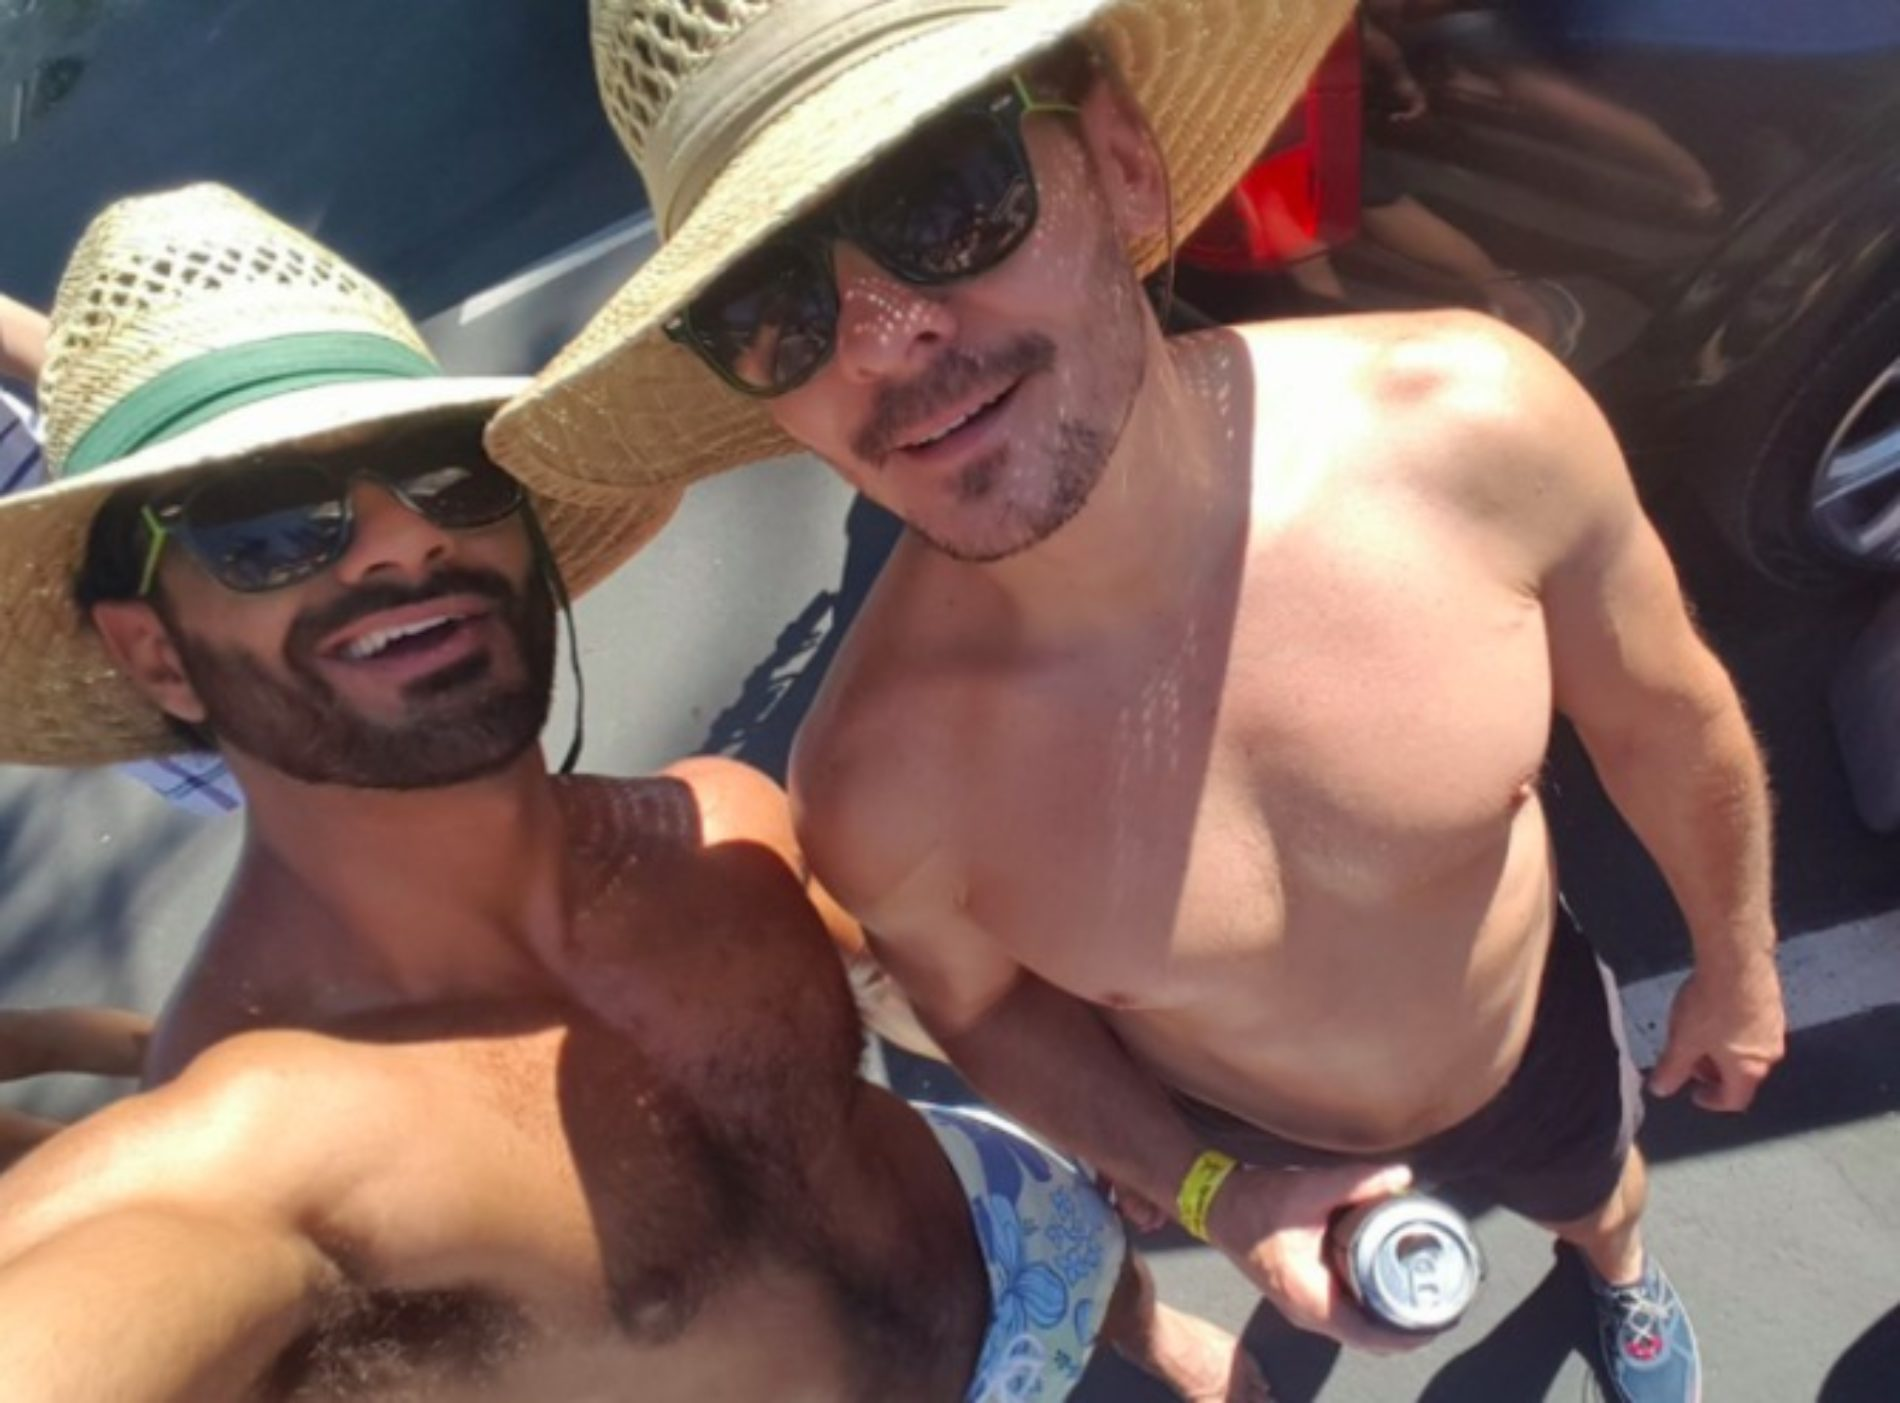 Gay porn star goes missing after his boyfriend is found stabbed to death